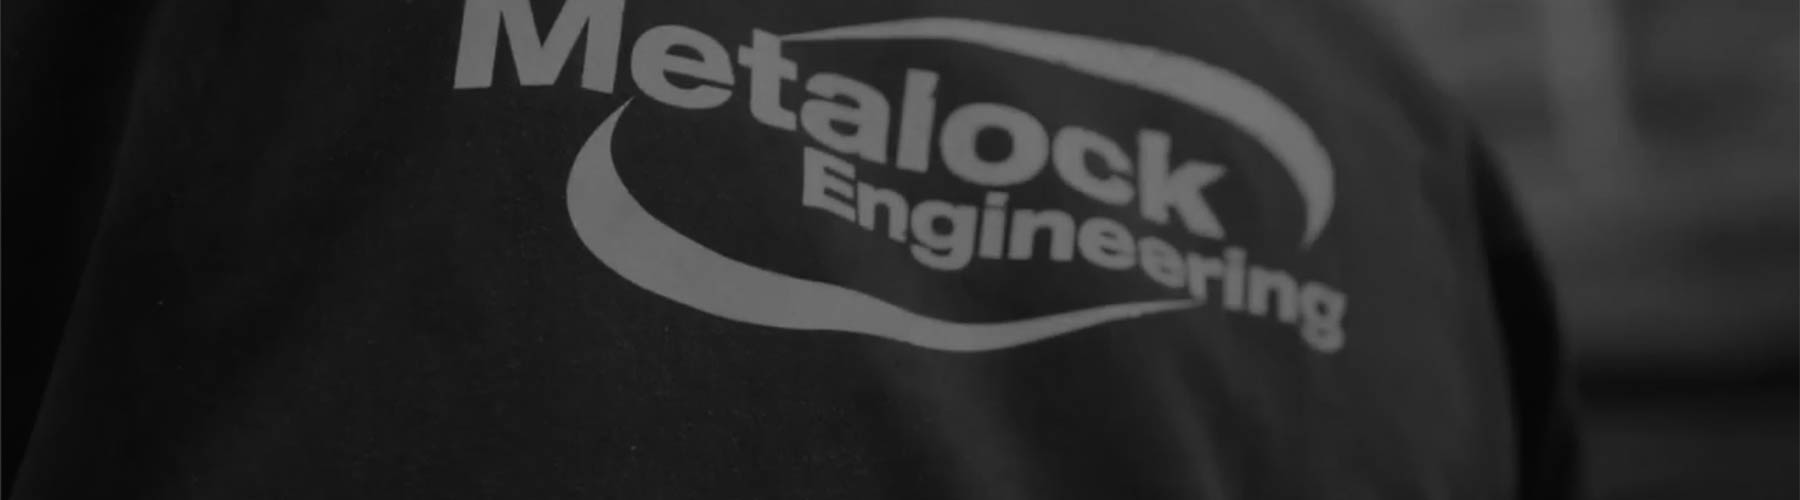 Metalock Engineering Group